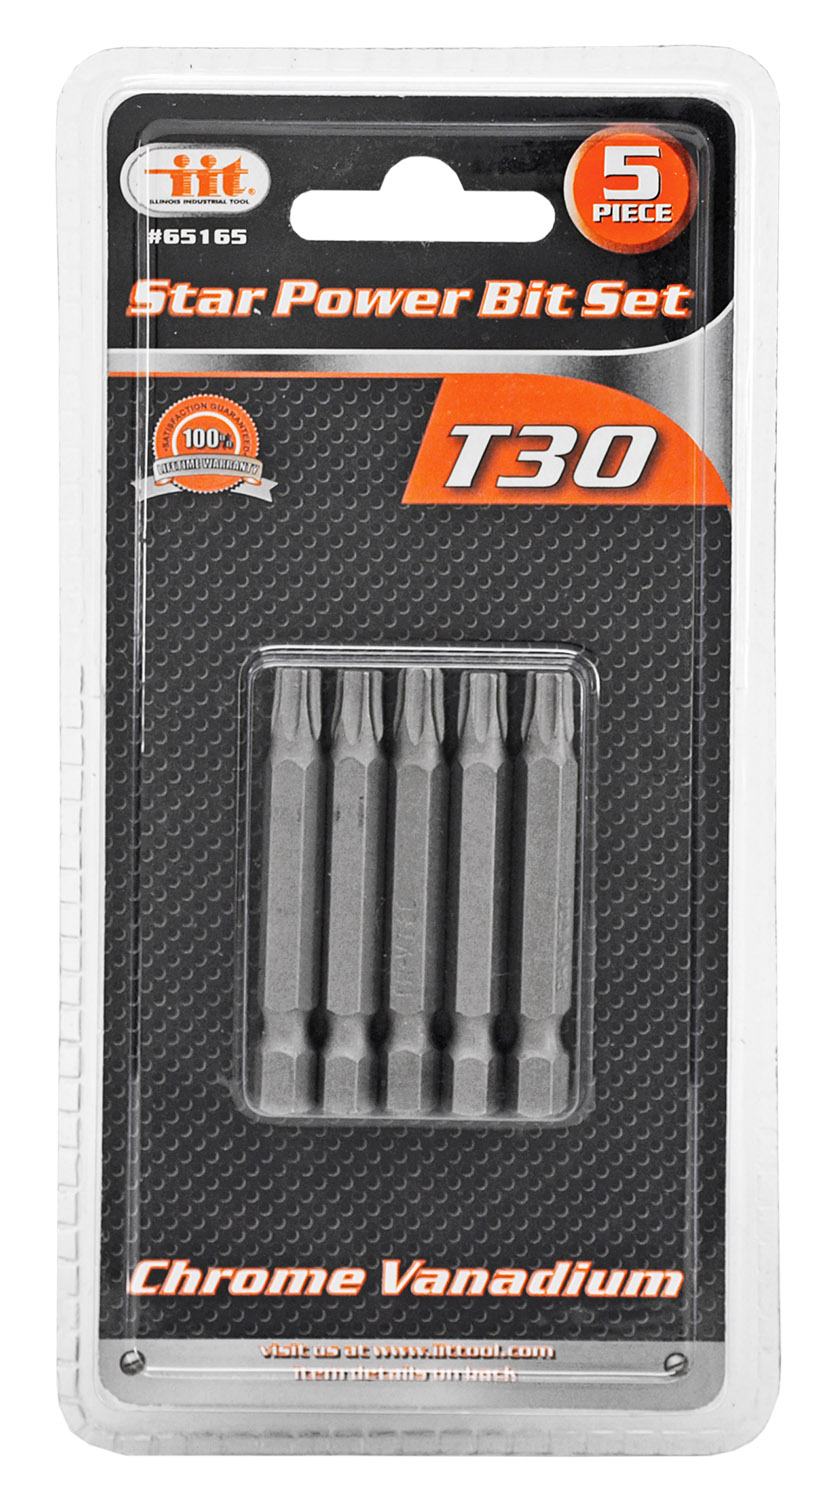 5-pc. Power Bit Set - T30 Torx Star